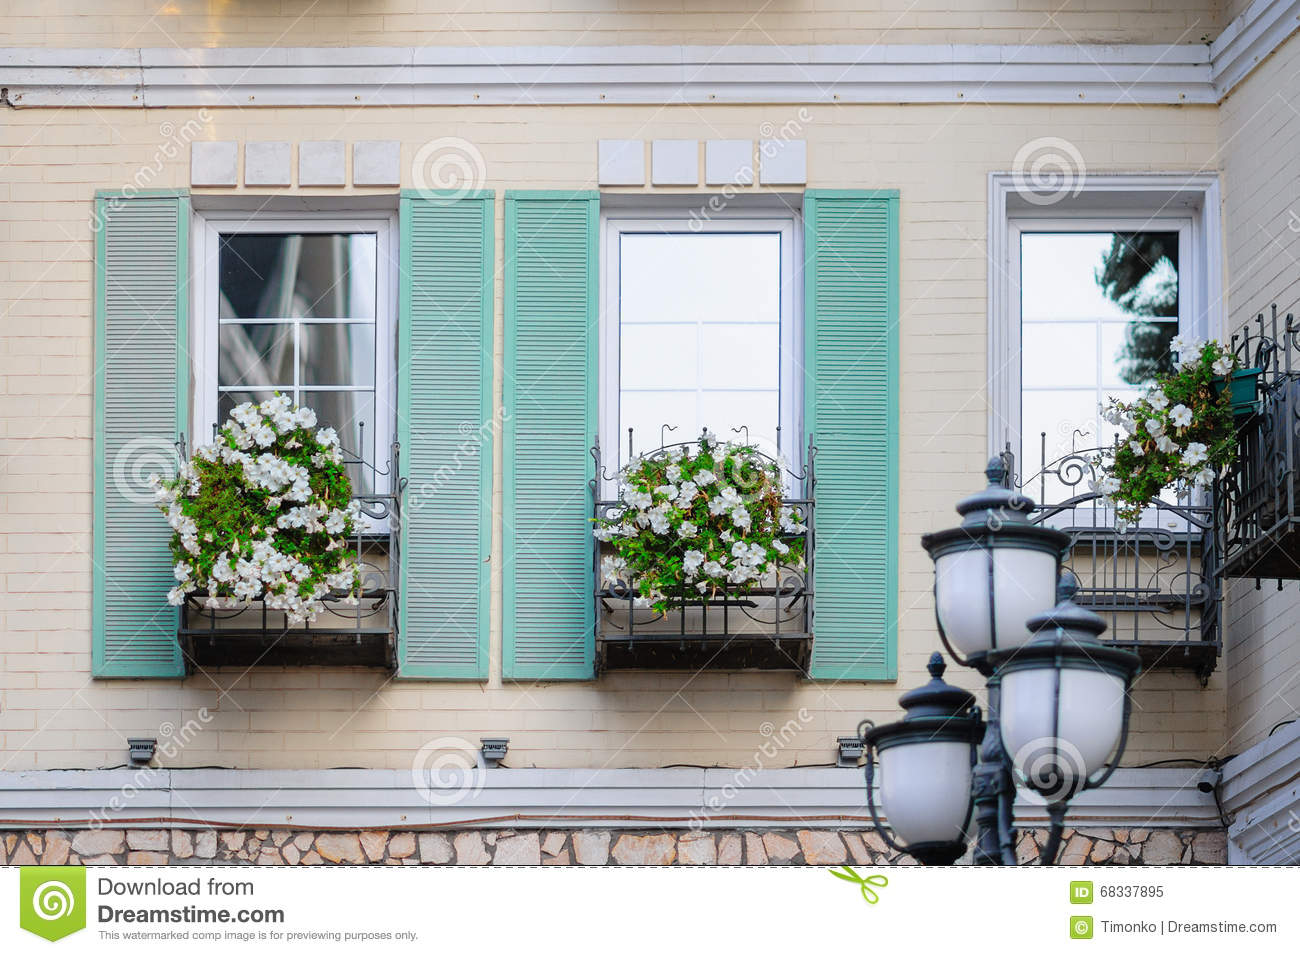 Fiori Bianchi Balcone.White Flowers On A Balcony In Front Of The Window Stock Image